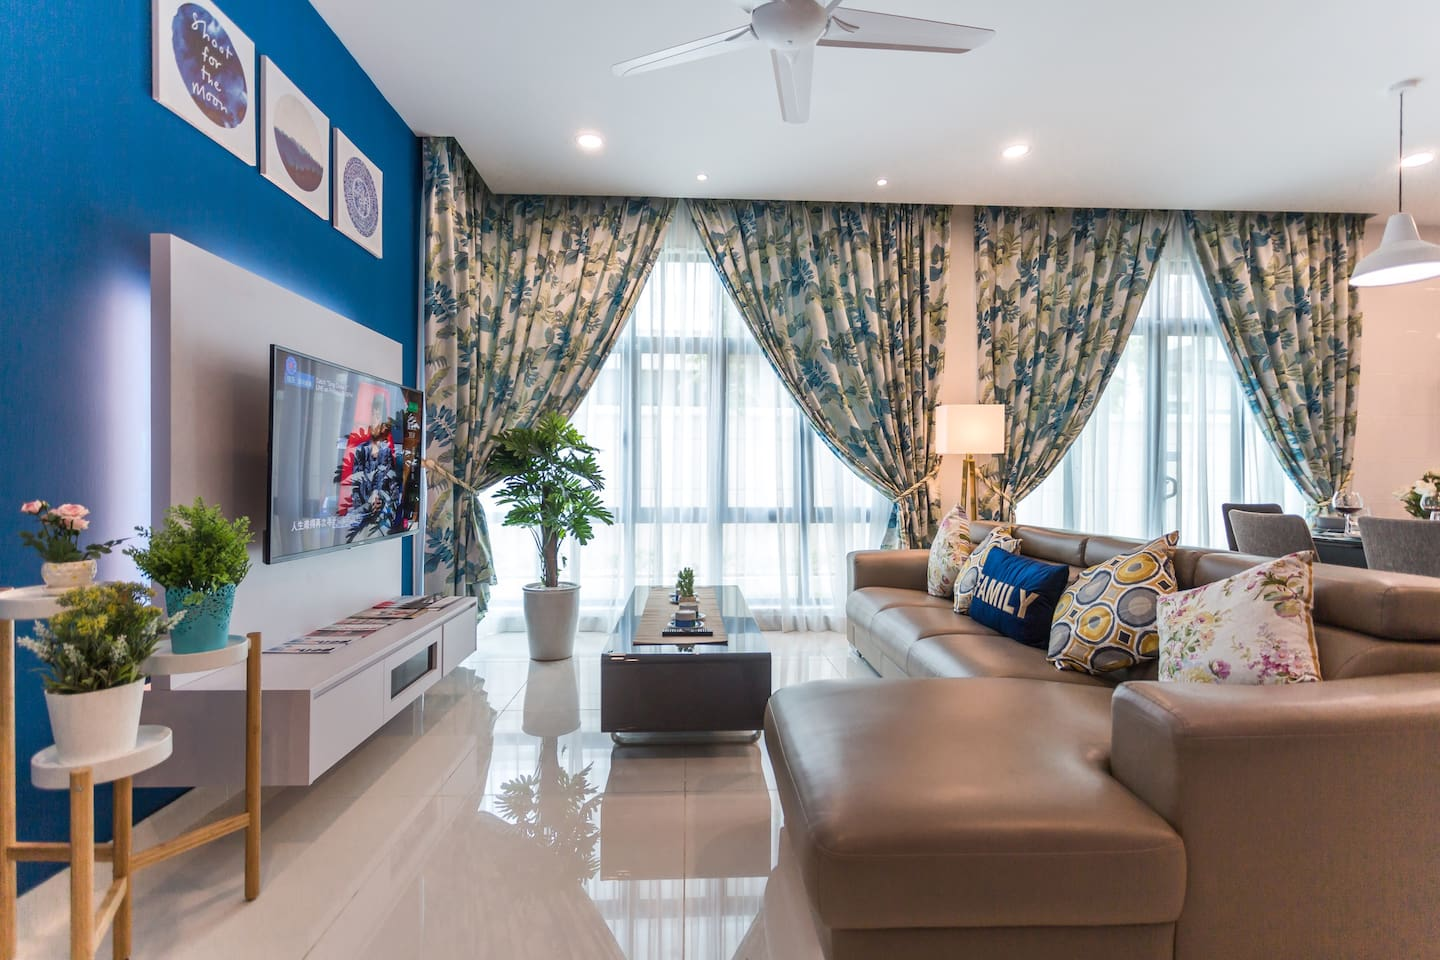 Welcome to our Paradise Holiday Home - Spacious Living Area Fully Decorated for your comfortable stay with us.